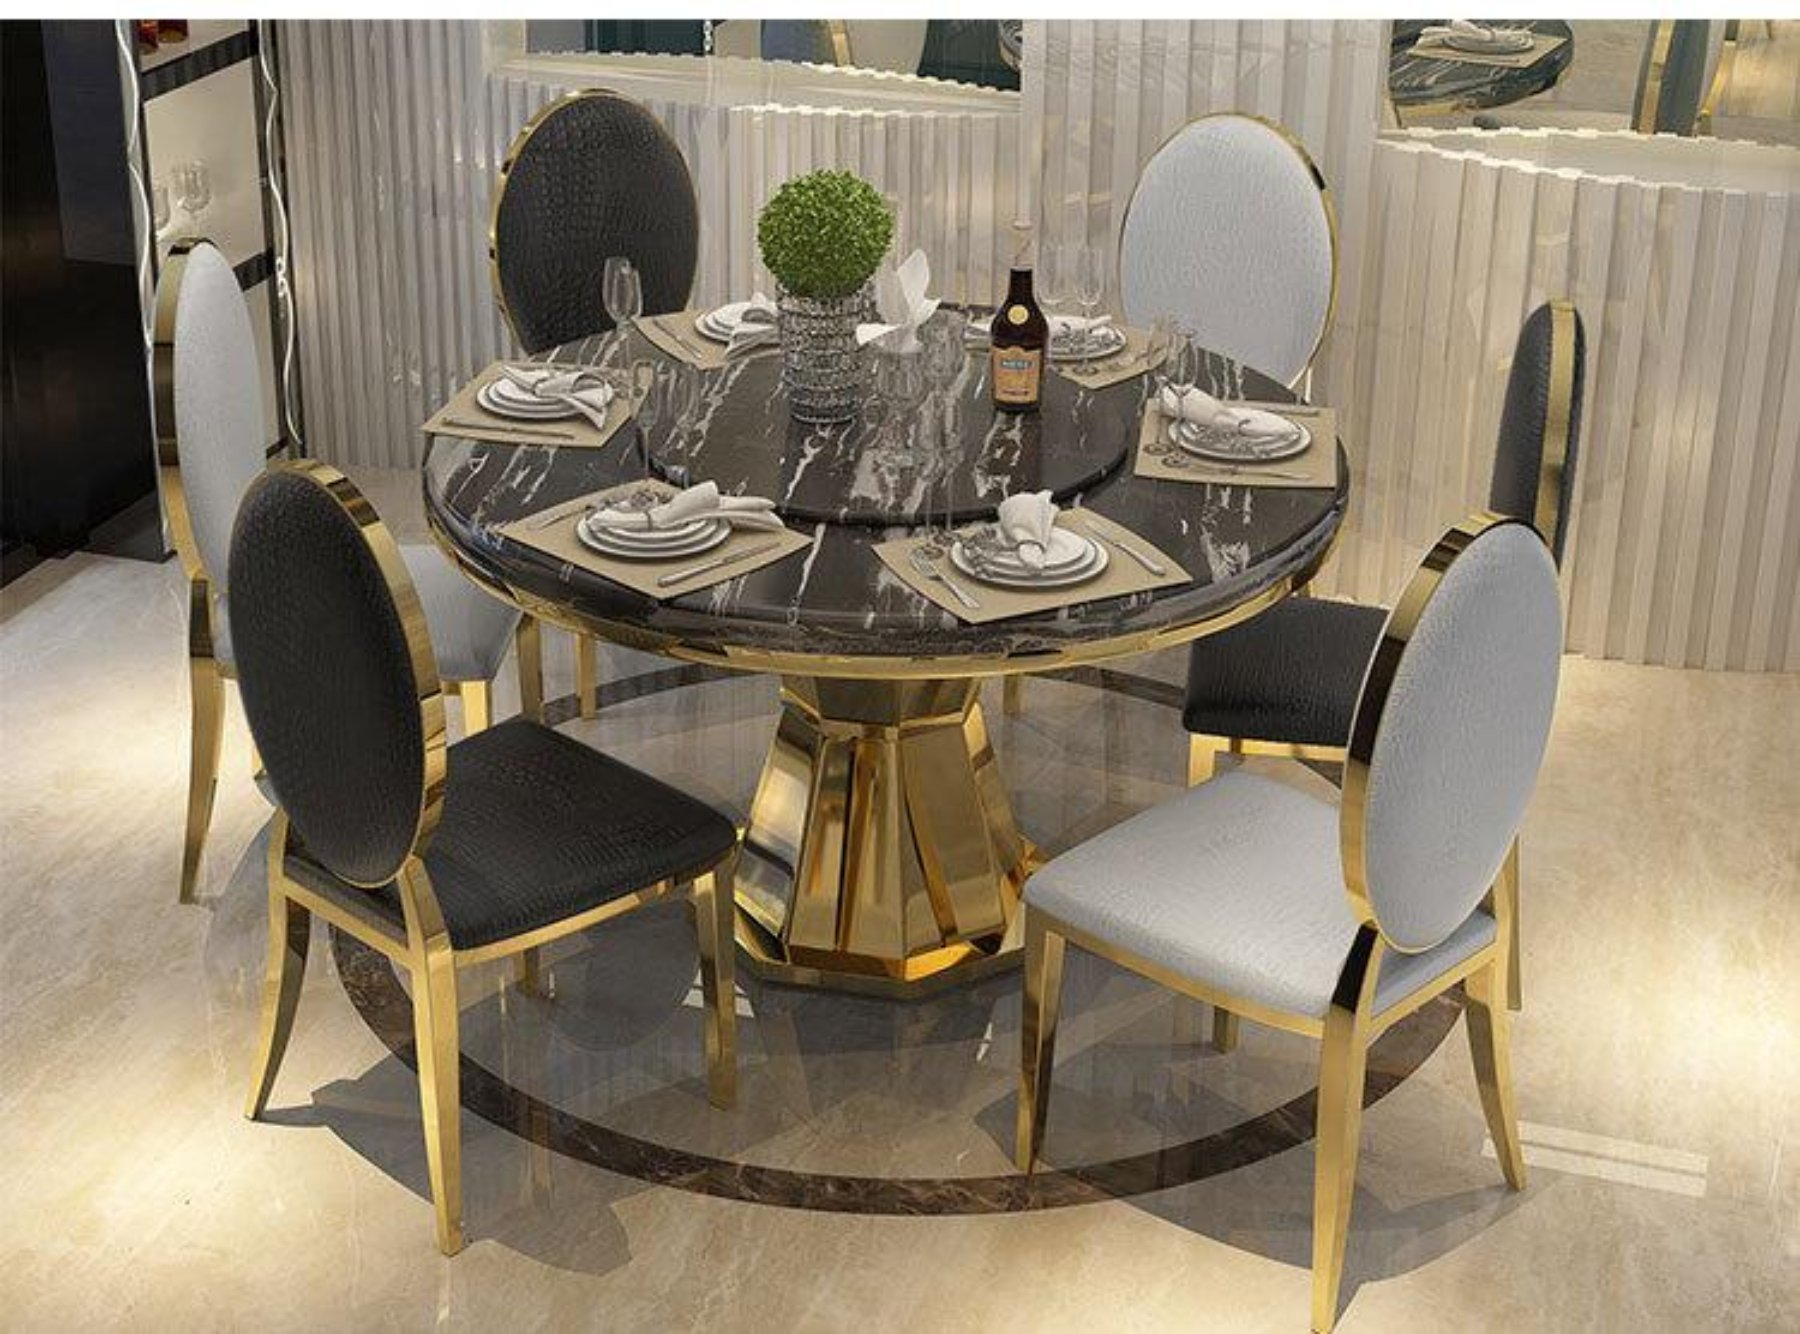 Golden Round Marble Top Dining Table With Luxury Chairs Round Dining Table Sets Marble Top Dining Table Modern Glass Dining Table